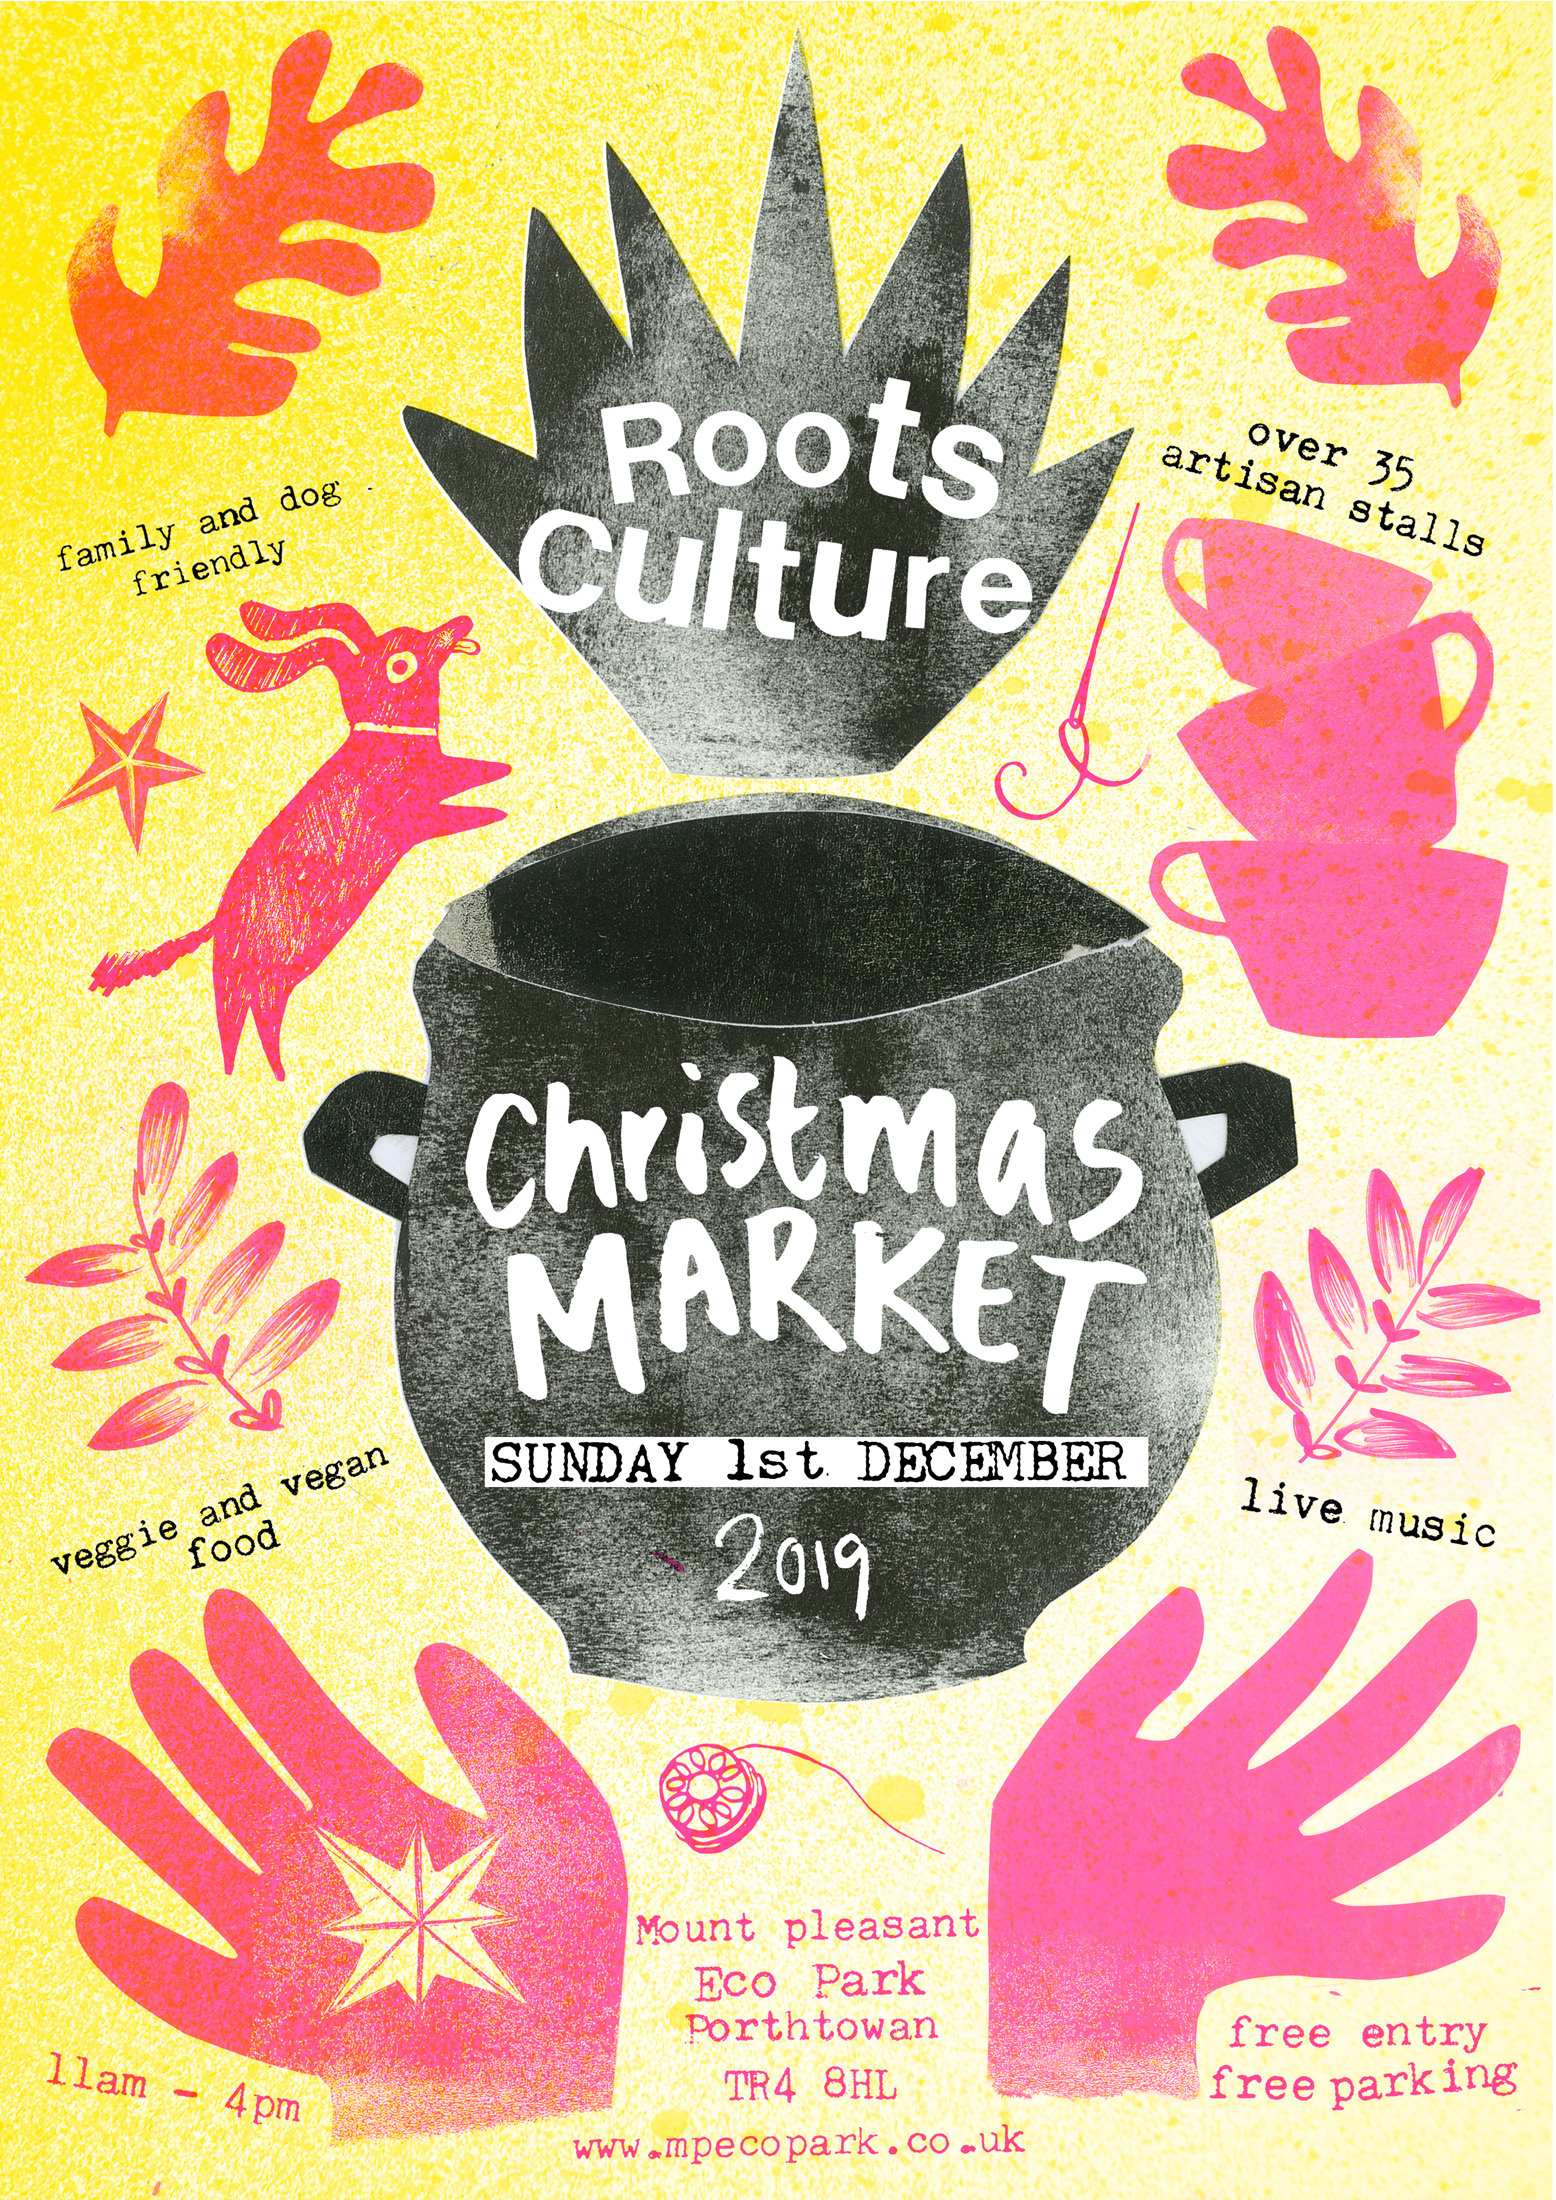 Roots Culture Christmas Market 1st December 2019 Mount Pleasant Eco Park